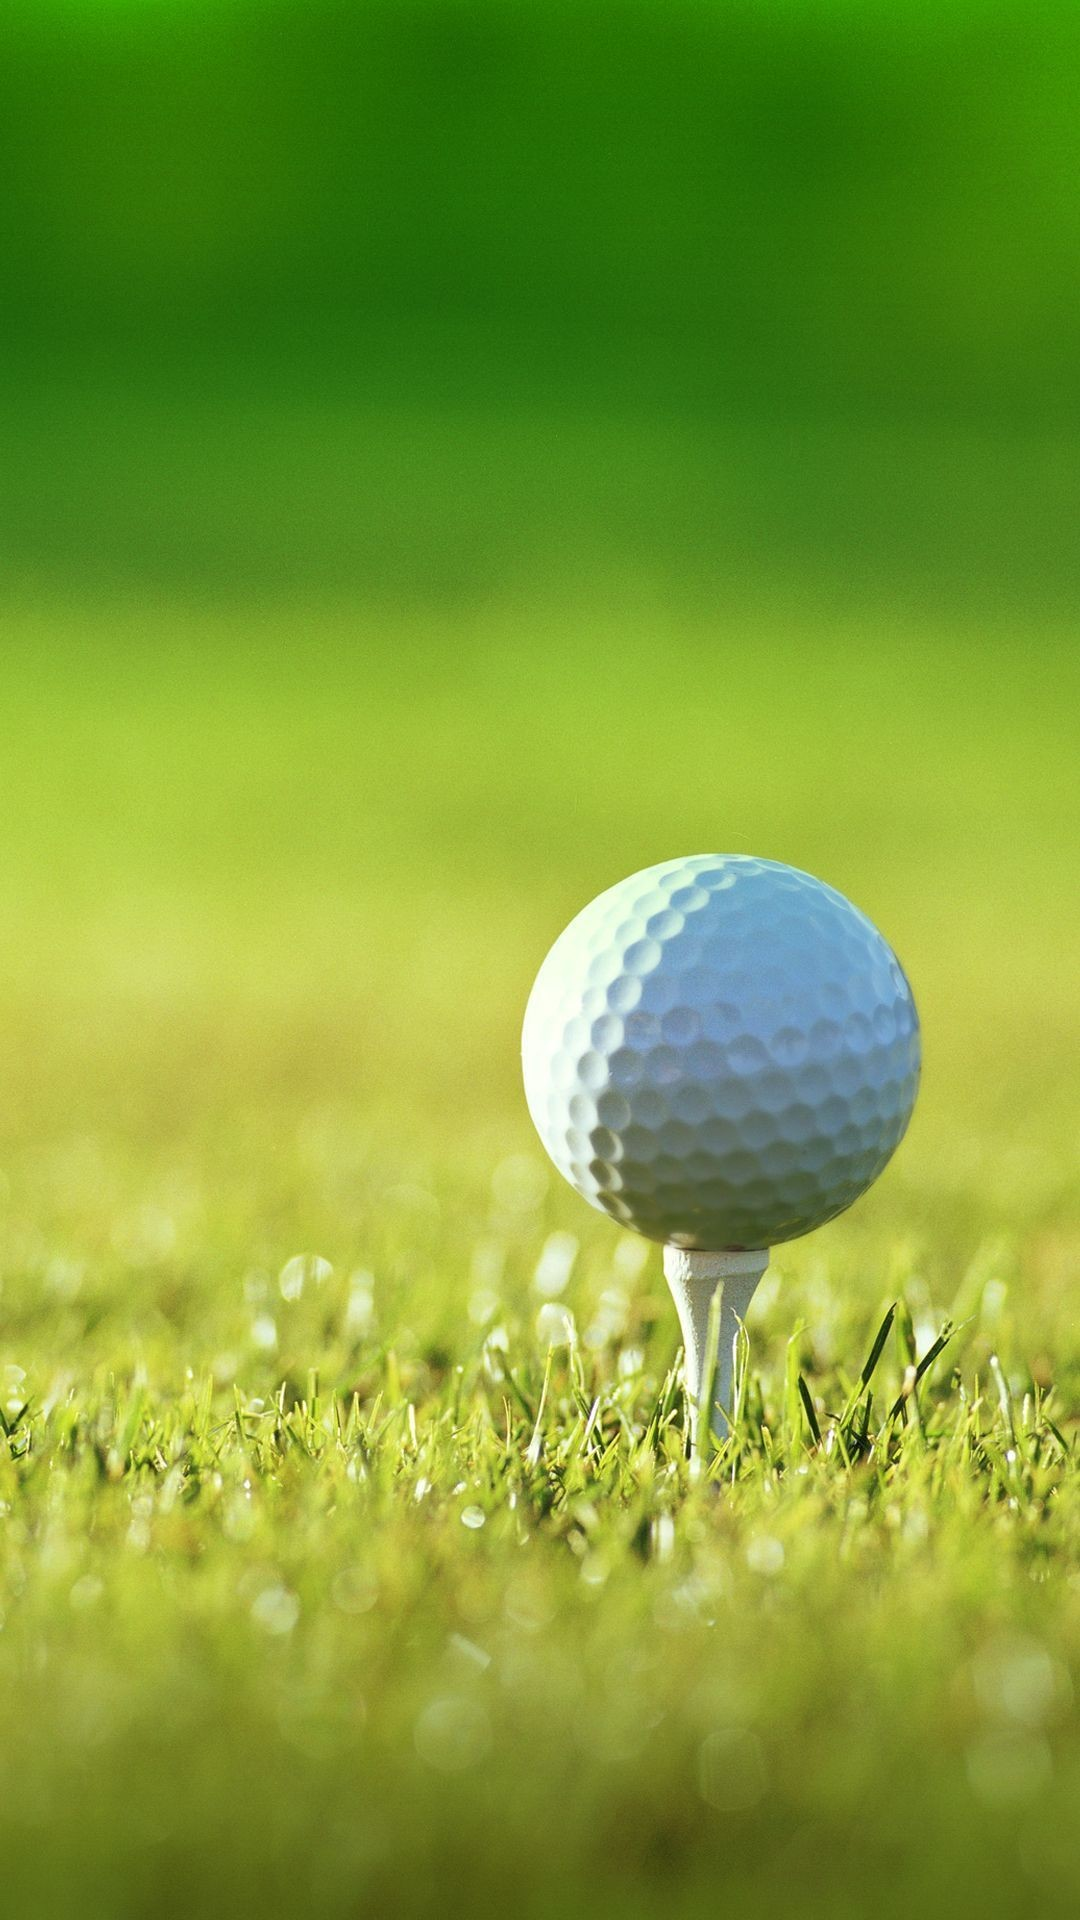 Golf For Lg Nexus Hd Andro - Android Golf - HD Wallpaper